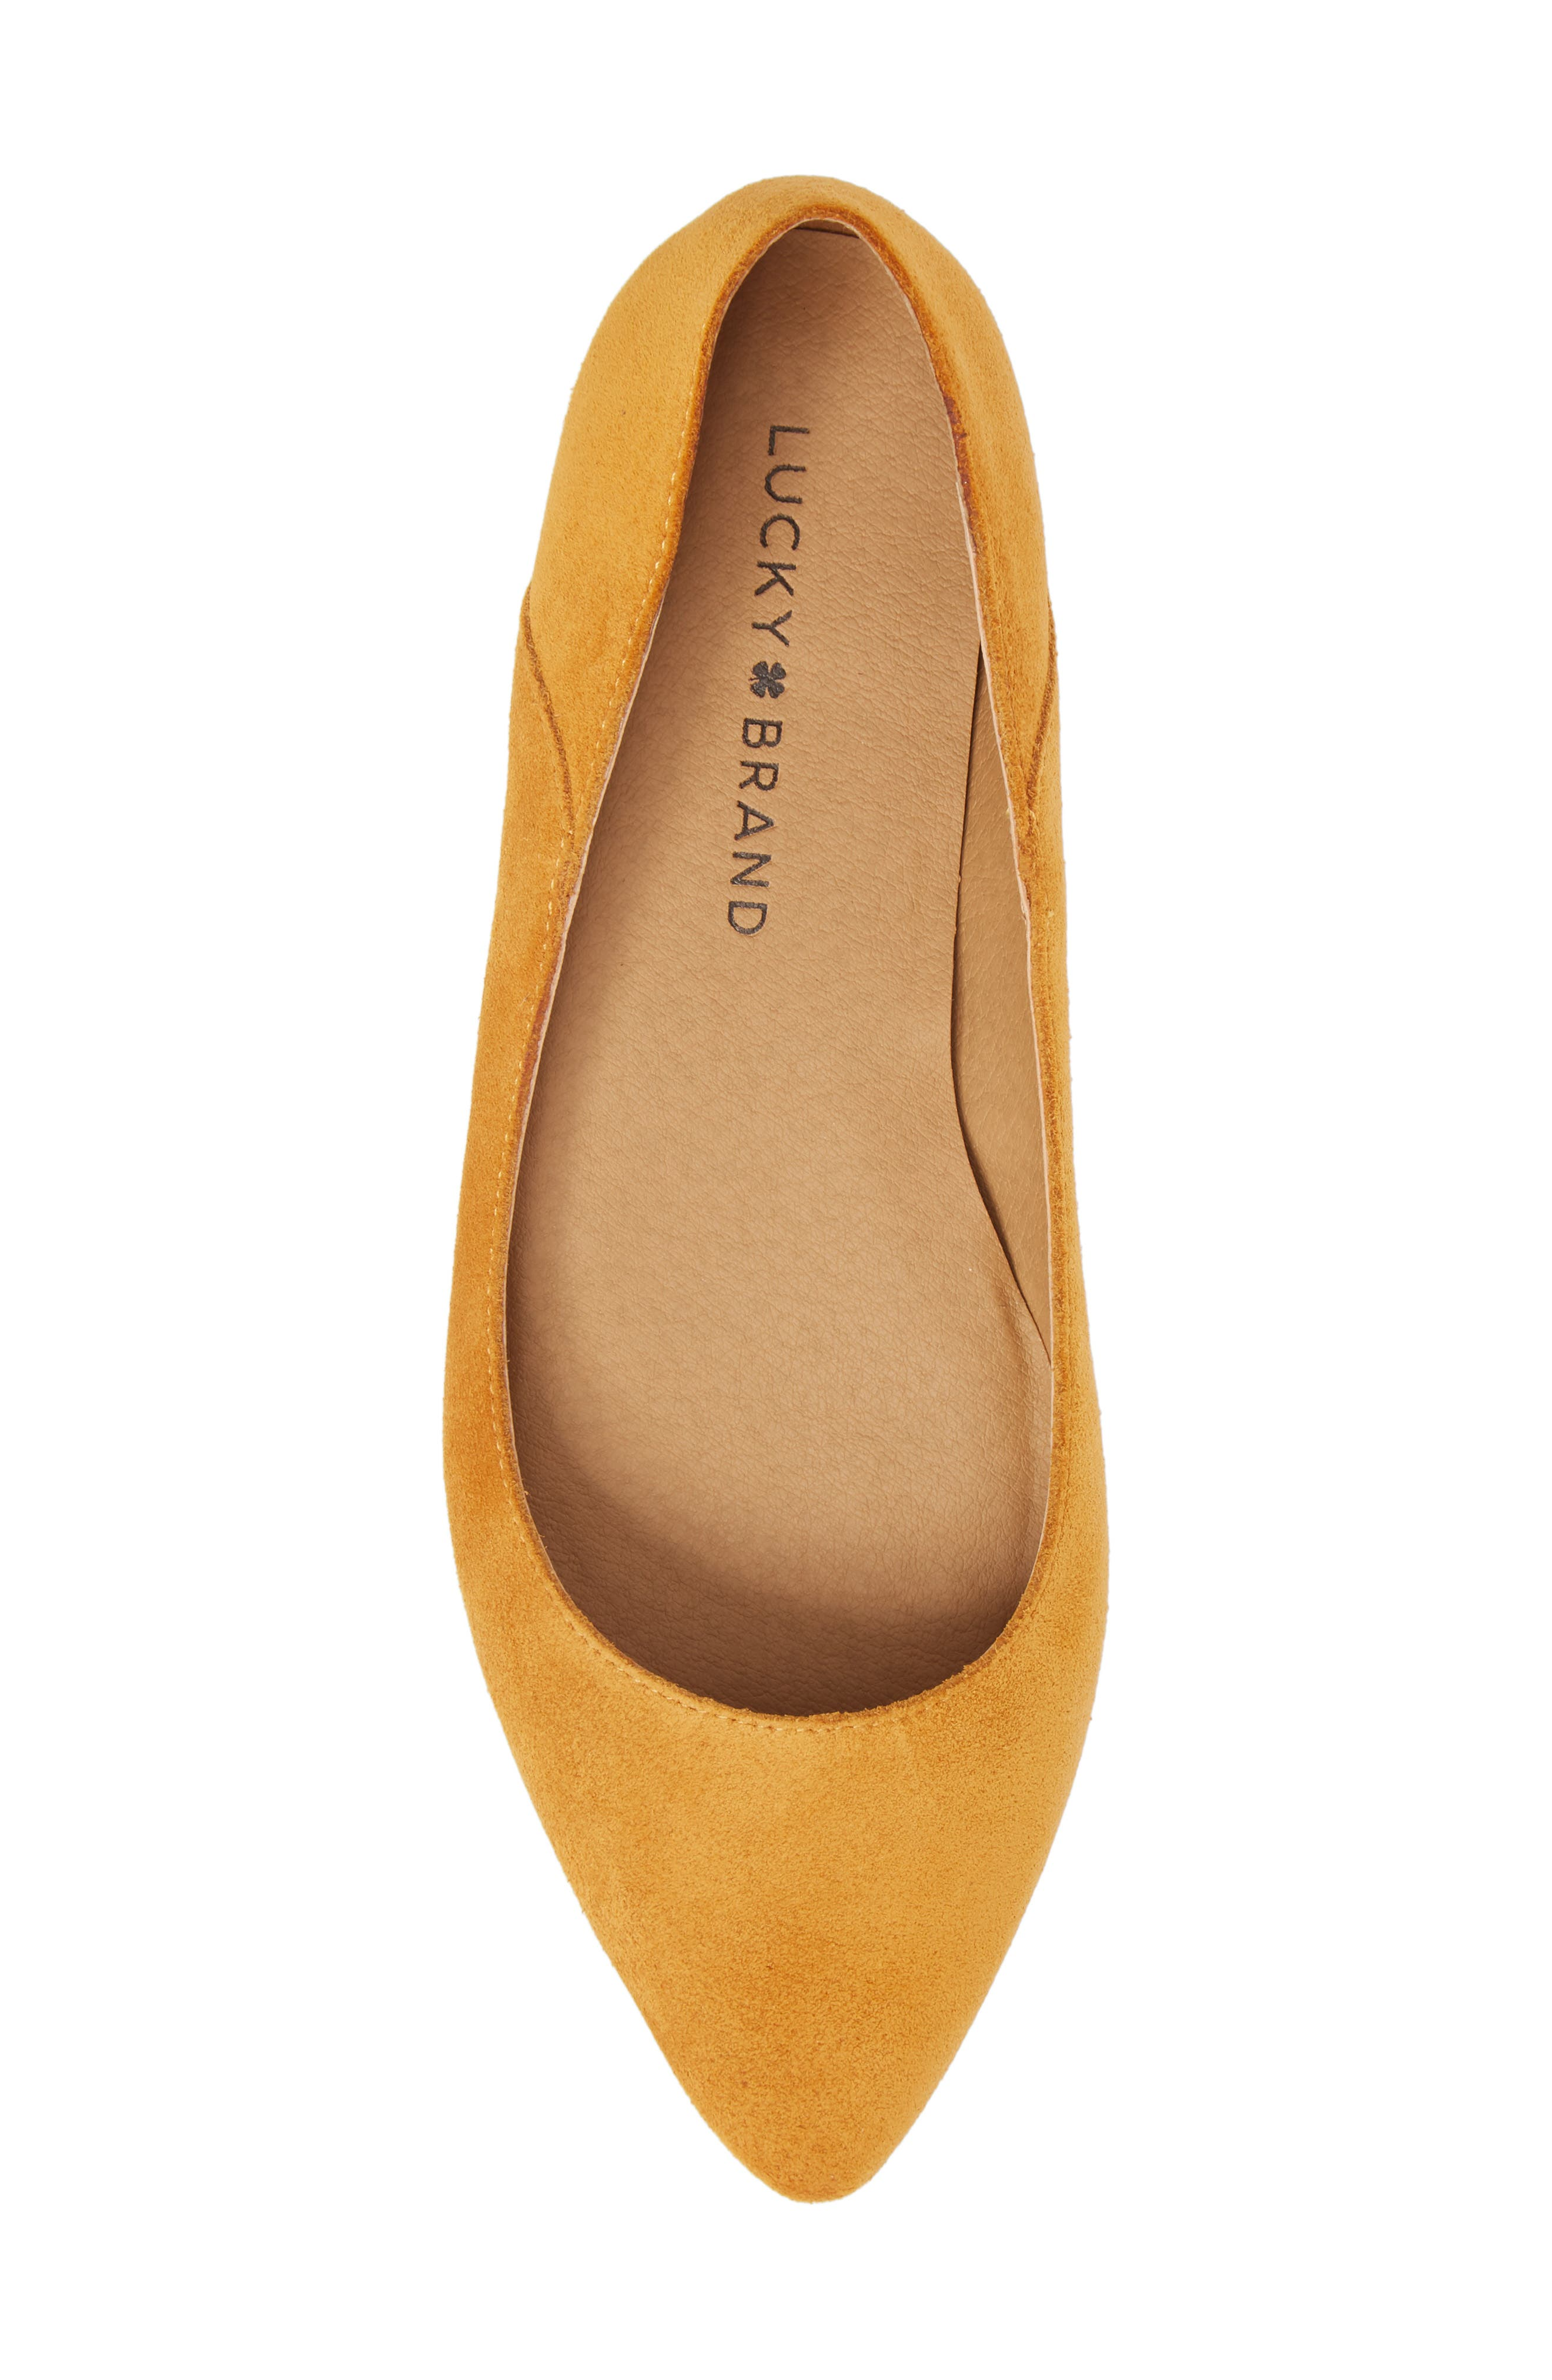 Bylando Flat,                             Alternate thumbnail 5, color,                             Inca Gold Suede